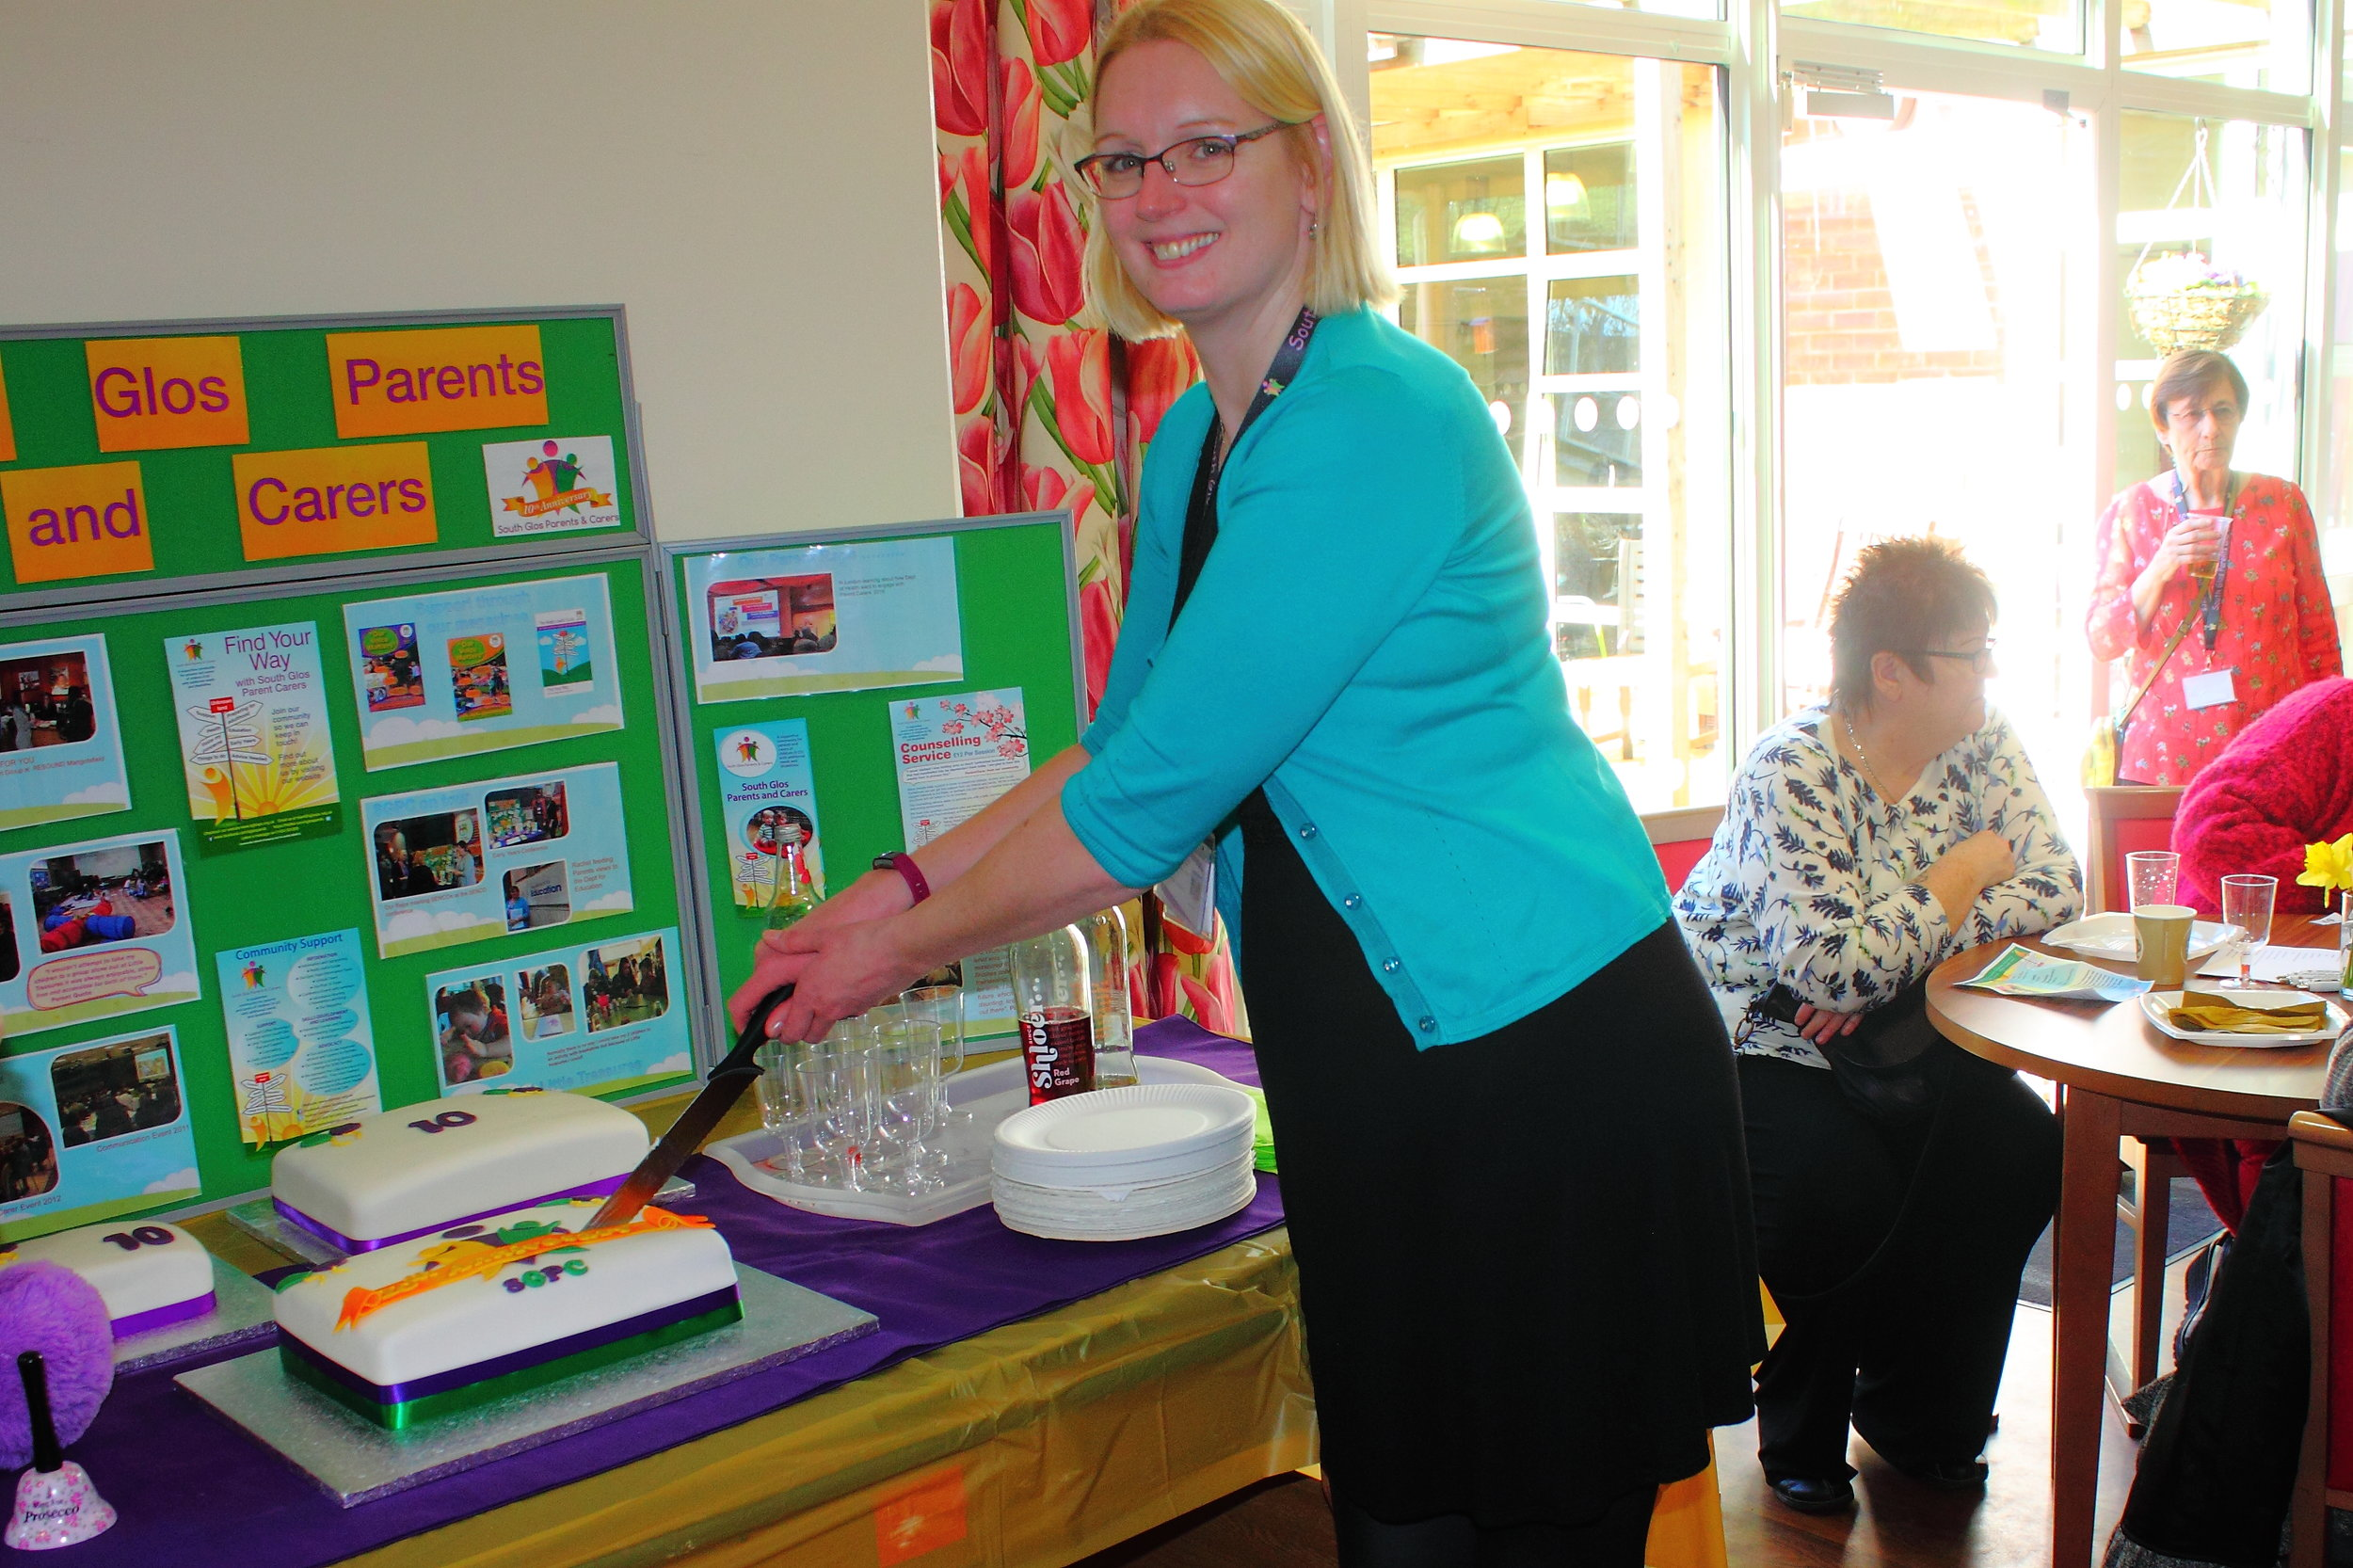 Caz is cutting the first of 3 wonderful cakes baked and decorated by our Early Years Specialist and all round fantastic artist Gill Robbins